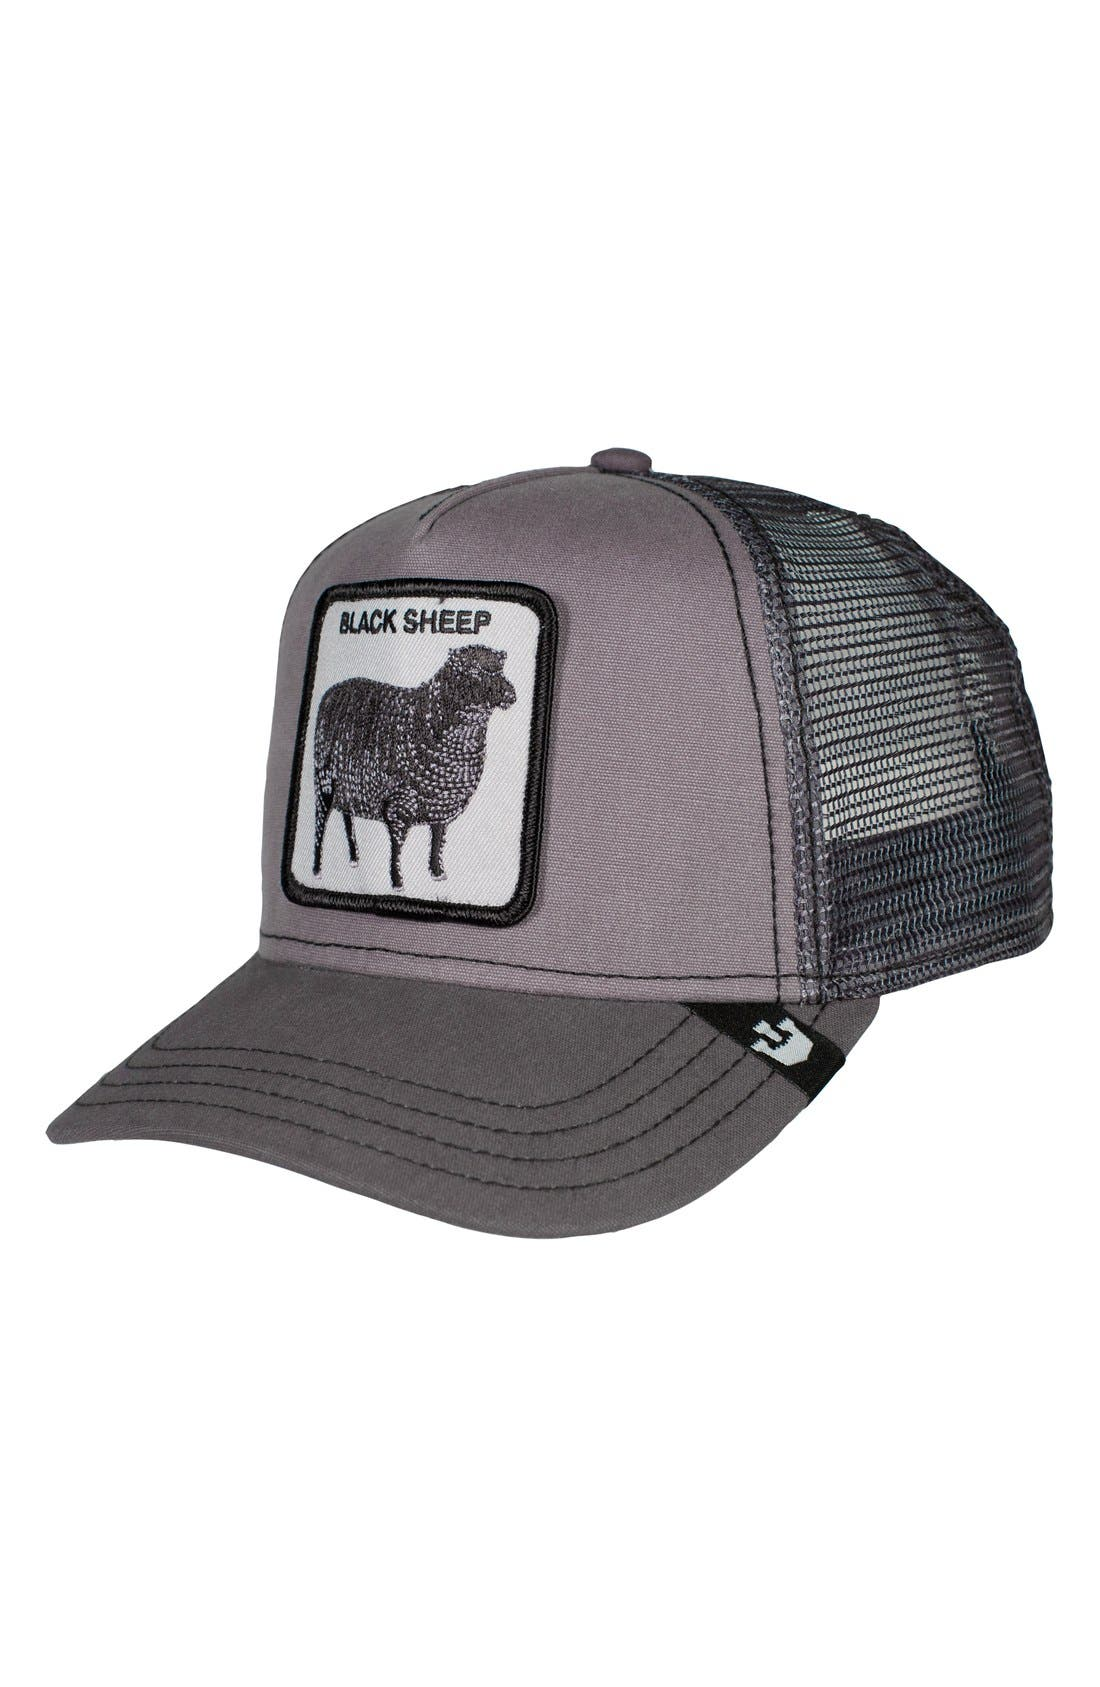 Alternate Image 1 Selected - Goorin Brothers 'Shades of Black' Mesh Trucker Hat